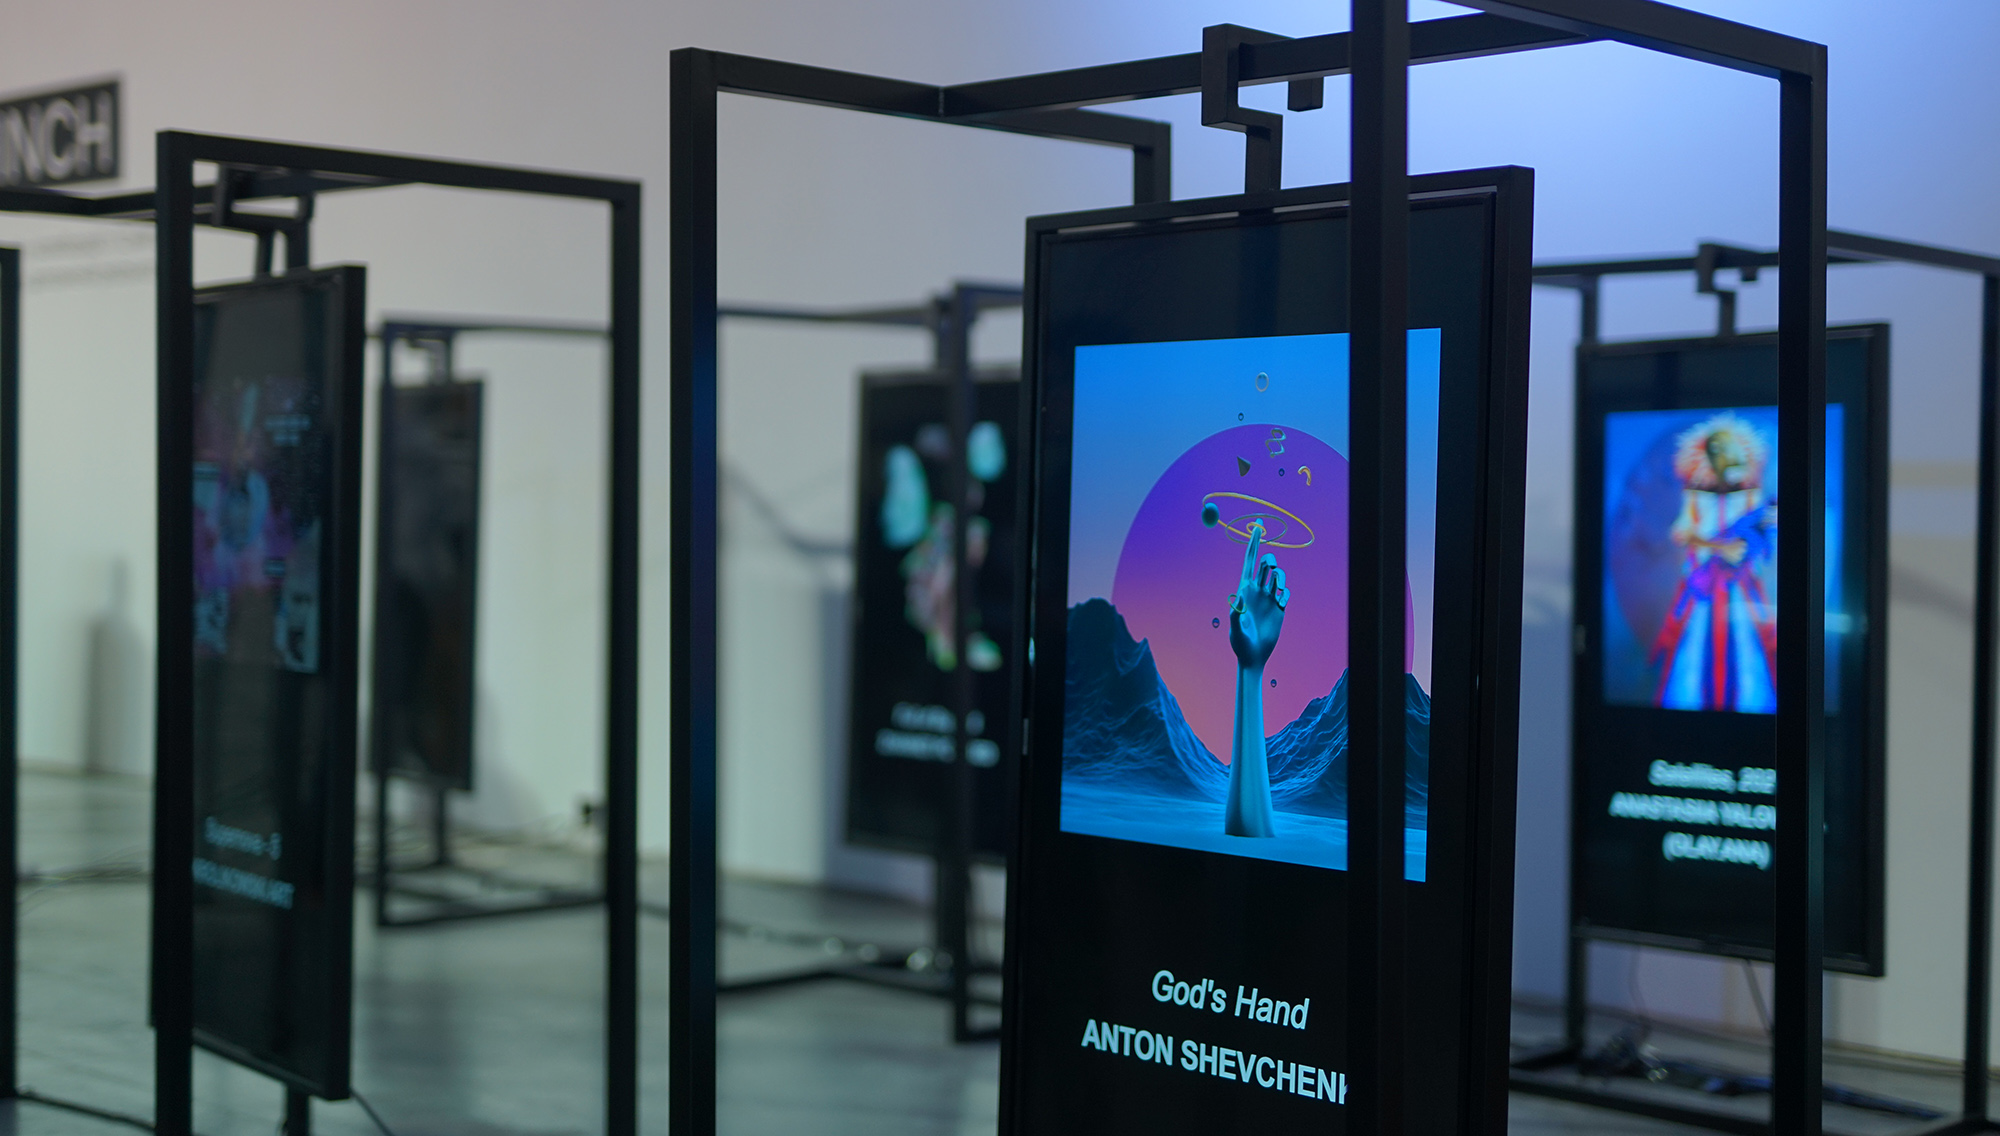 Exhibition of Digital and Crypto Art FRAMELESS